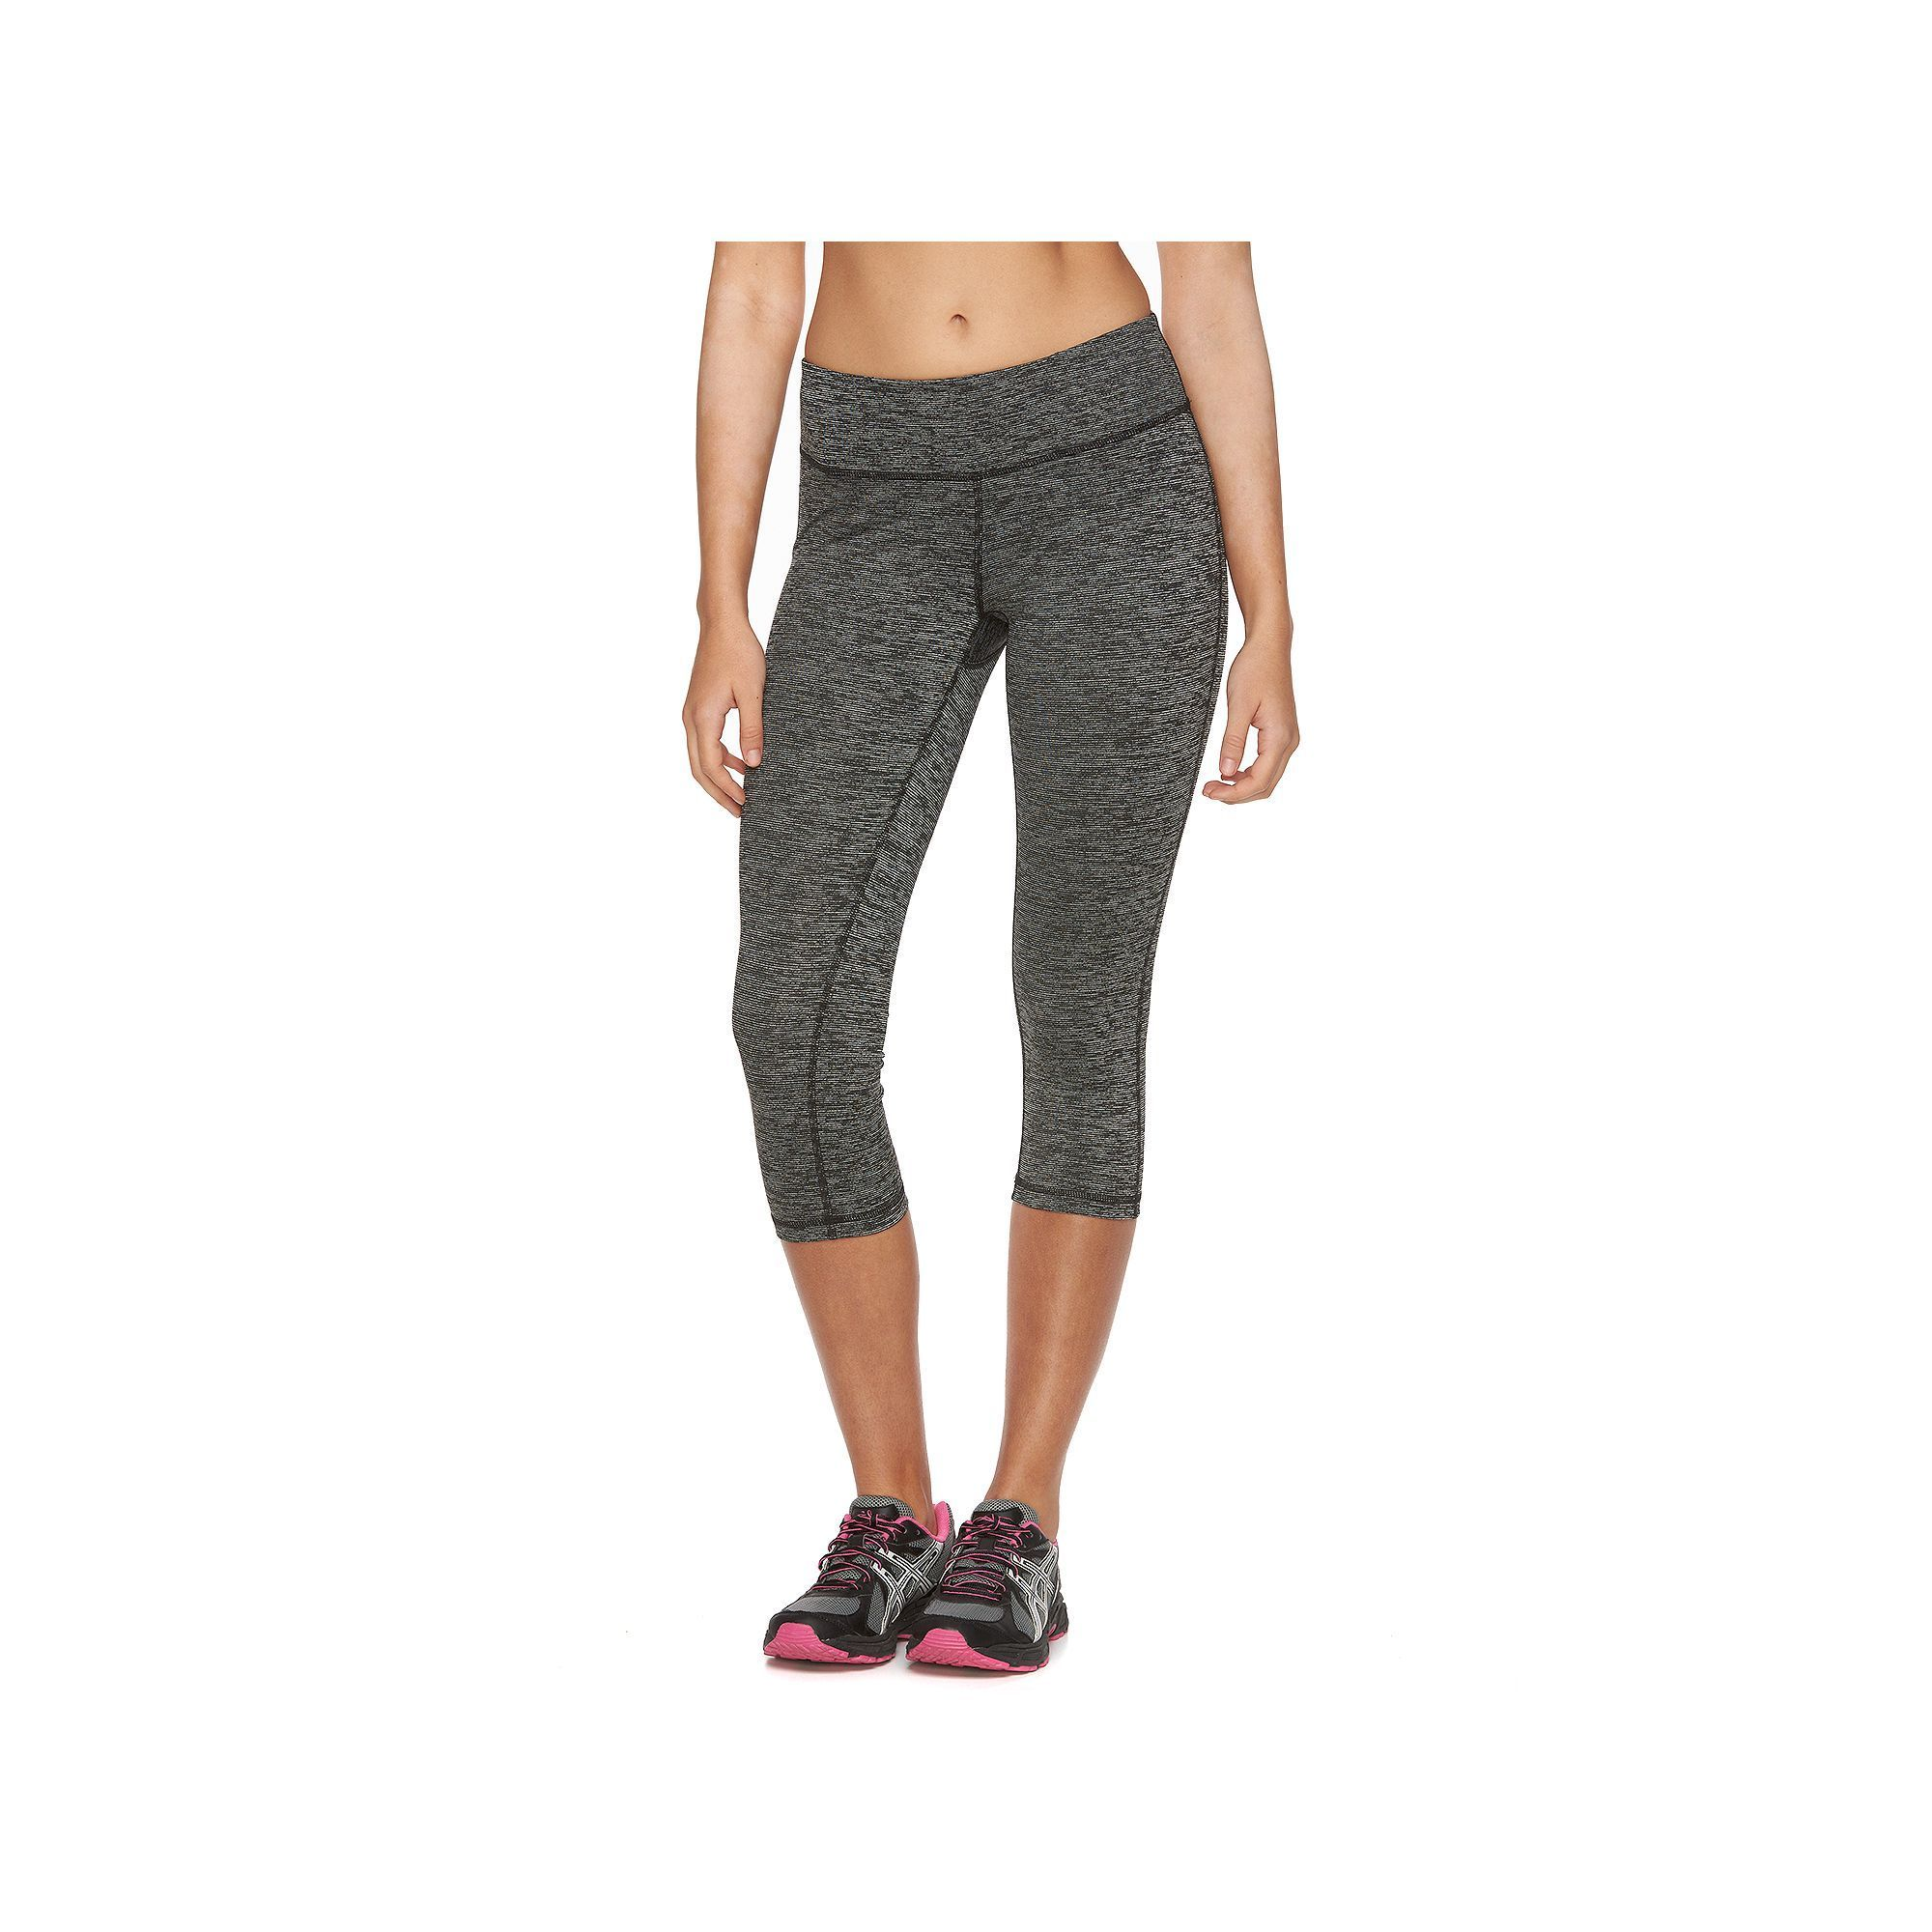 3da1e4fea9 Women's Tek Gear® DRY TEK Space-Dye Capri Workout Leggings, Size: Medium,  Black